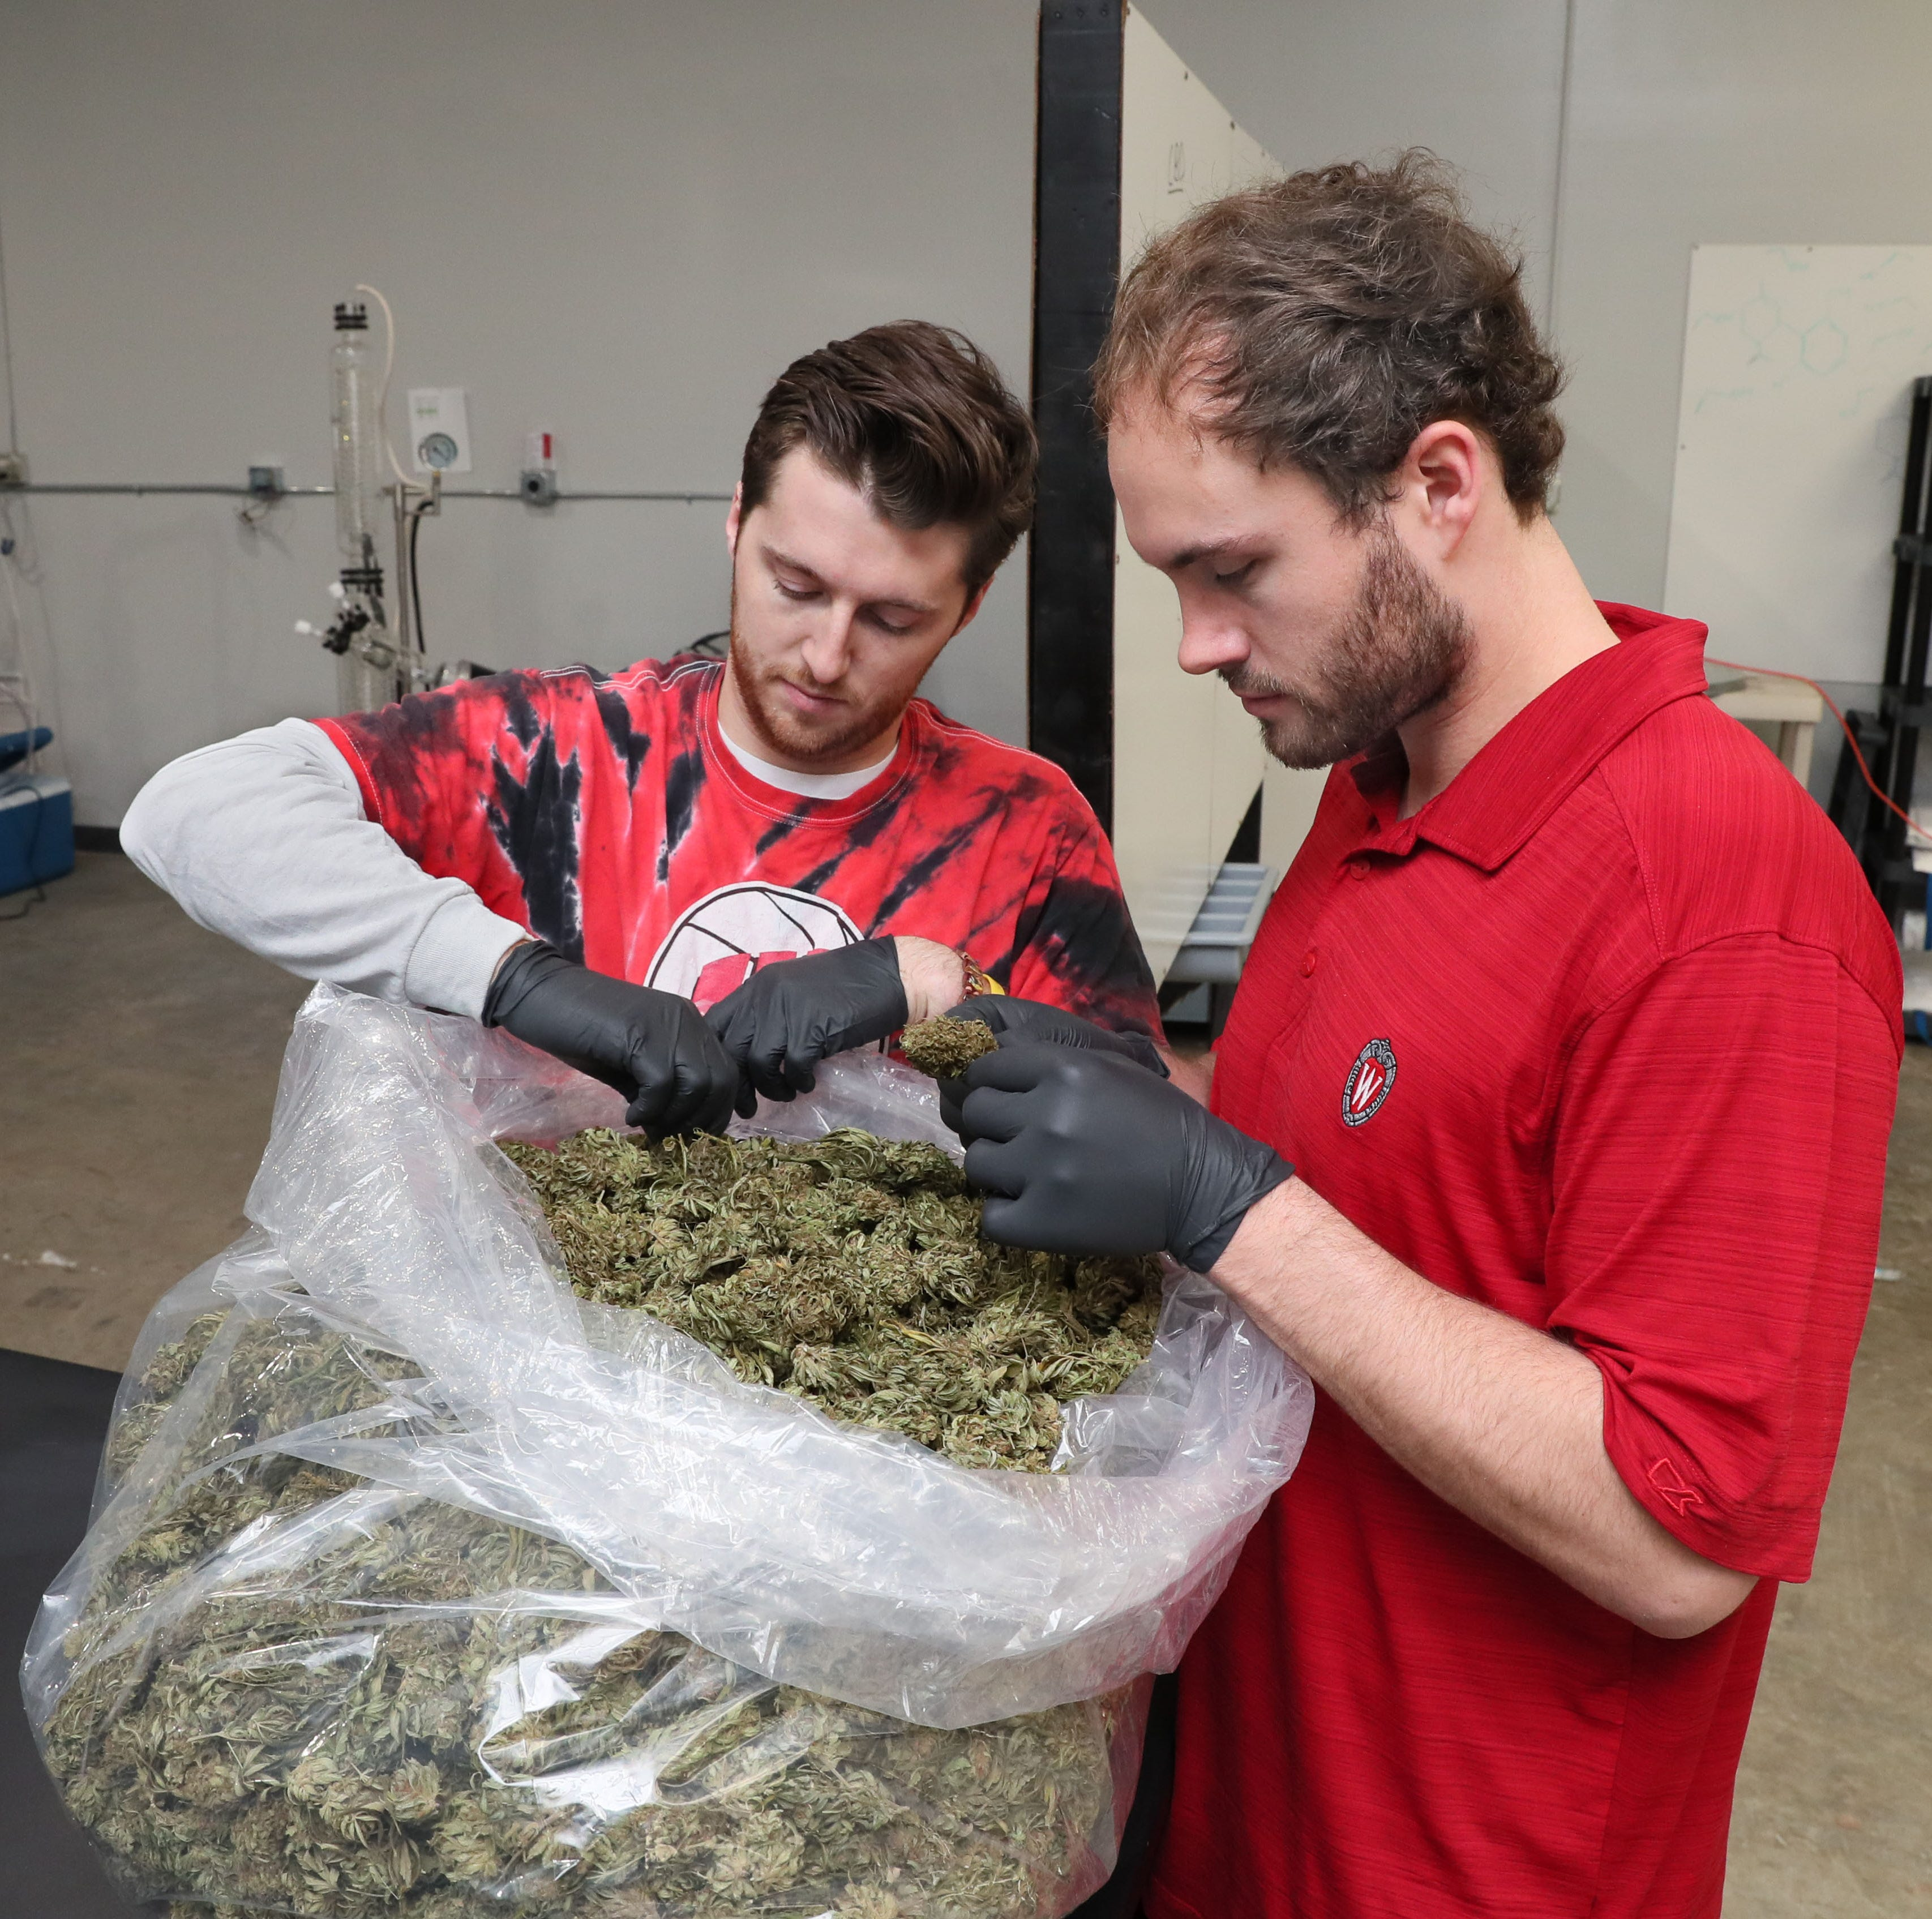 Dennis Mistrioty (left) and Griffin Lynch, of Wisconsin Hemp Scientific LLC, look over a bag of industrial hemp from a grower. It is the raw product from which they extract CBD and — note to stoners — you could smoke the entire bag and not get high.